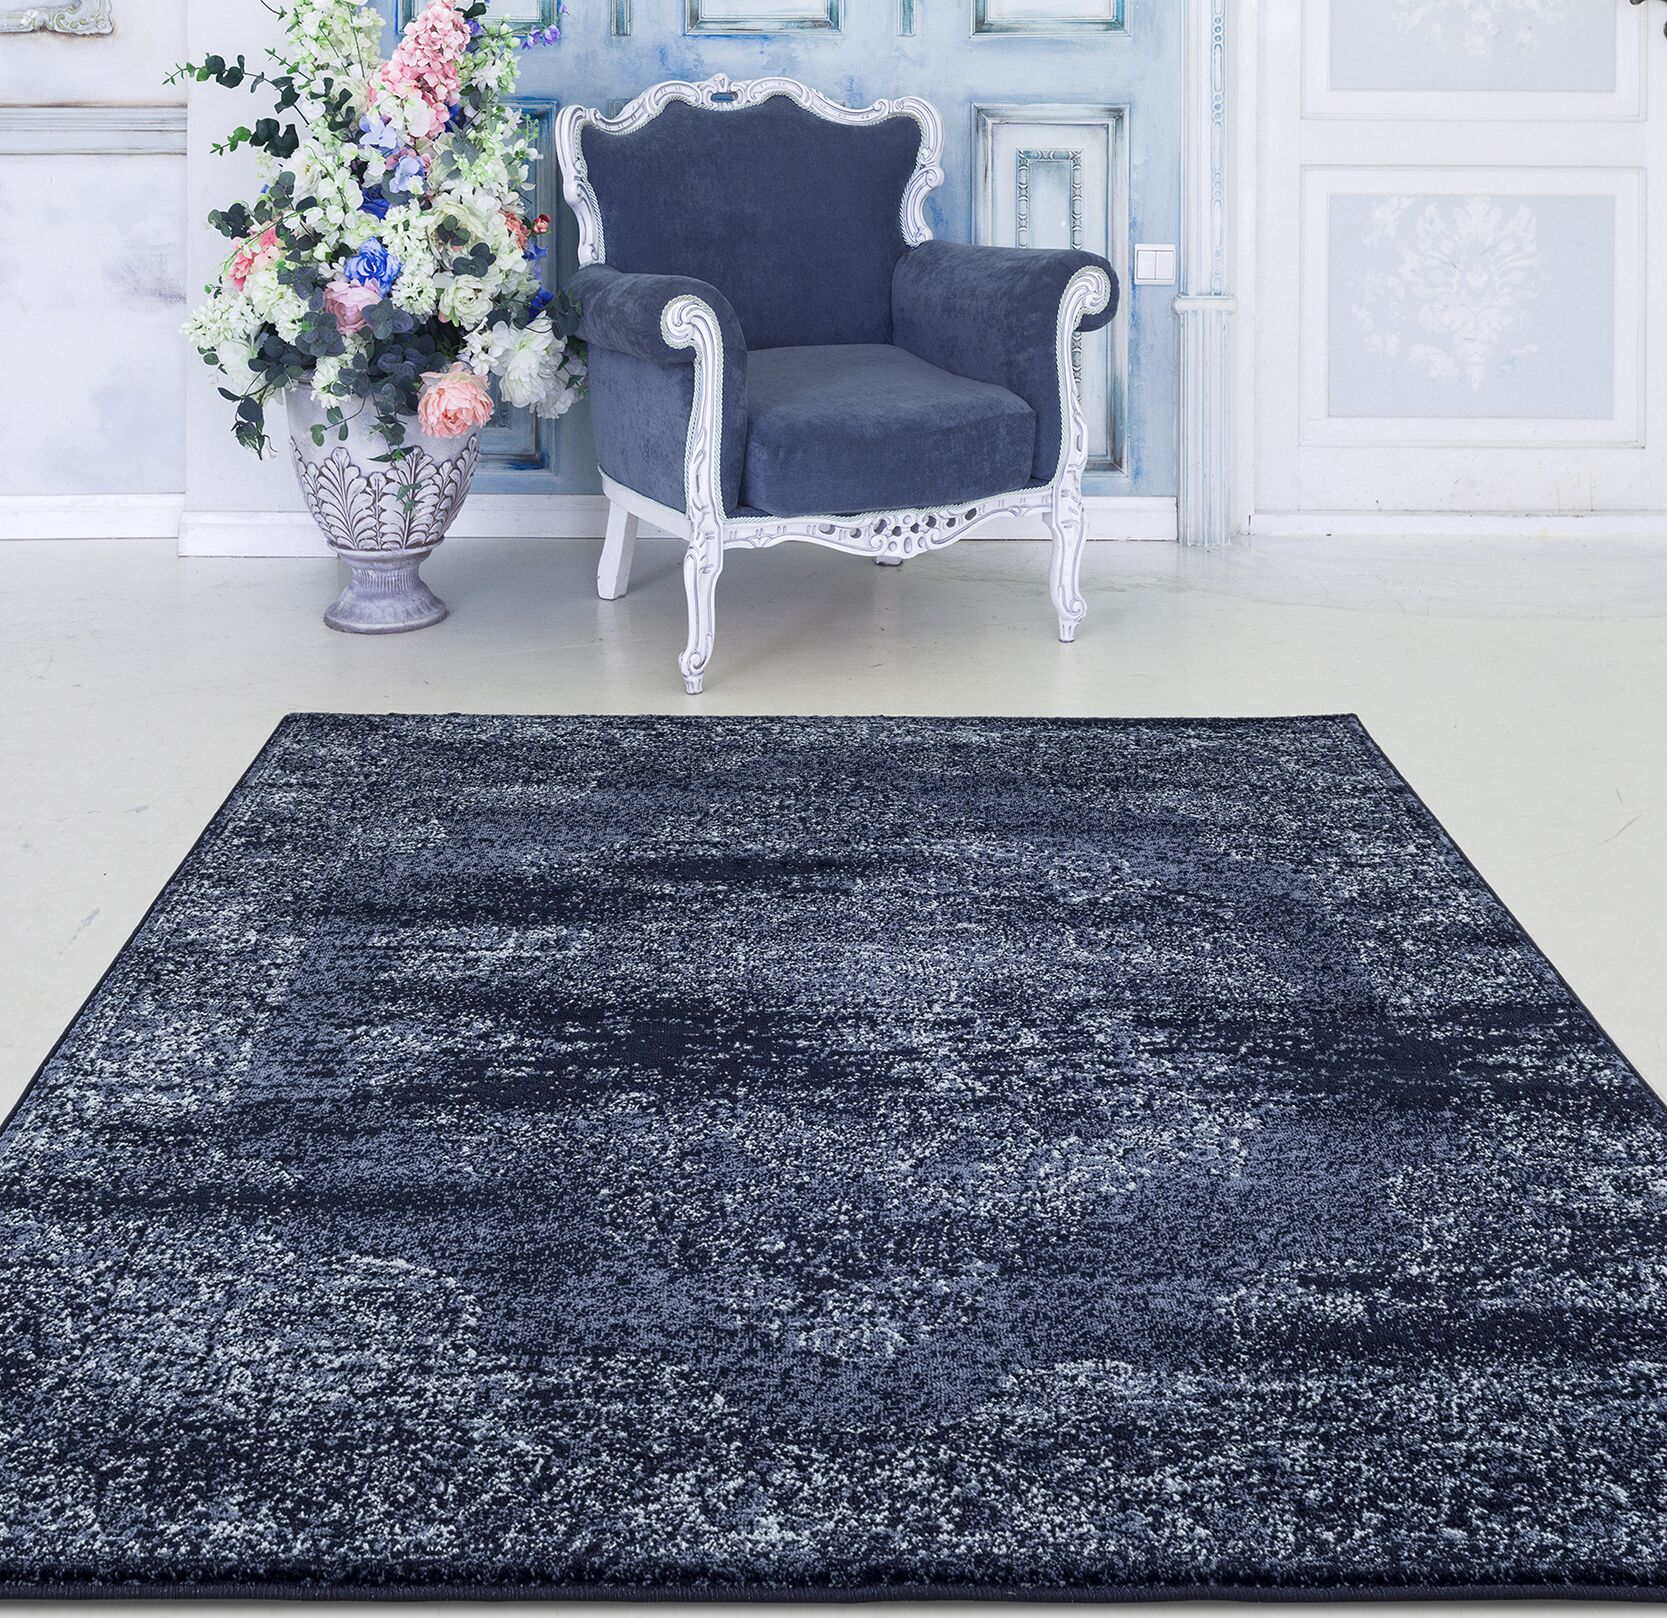 Durst Oriental Navy Area Rug Rug Size: Rectangle 7'1'' x 10'6''